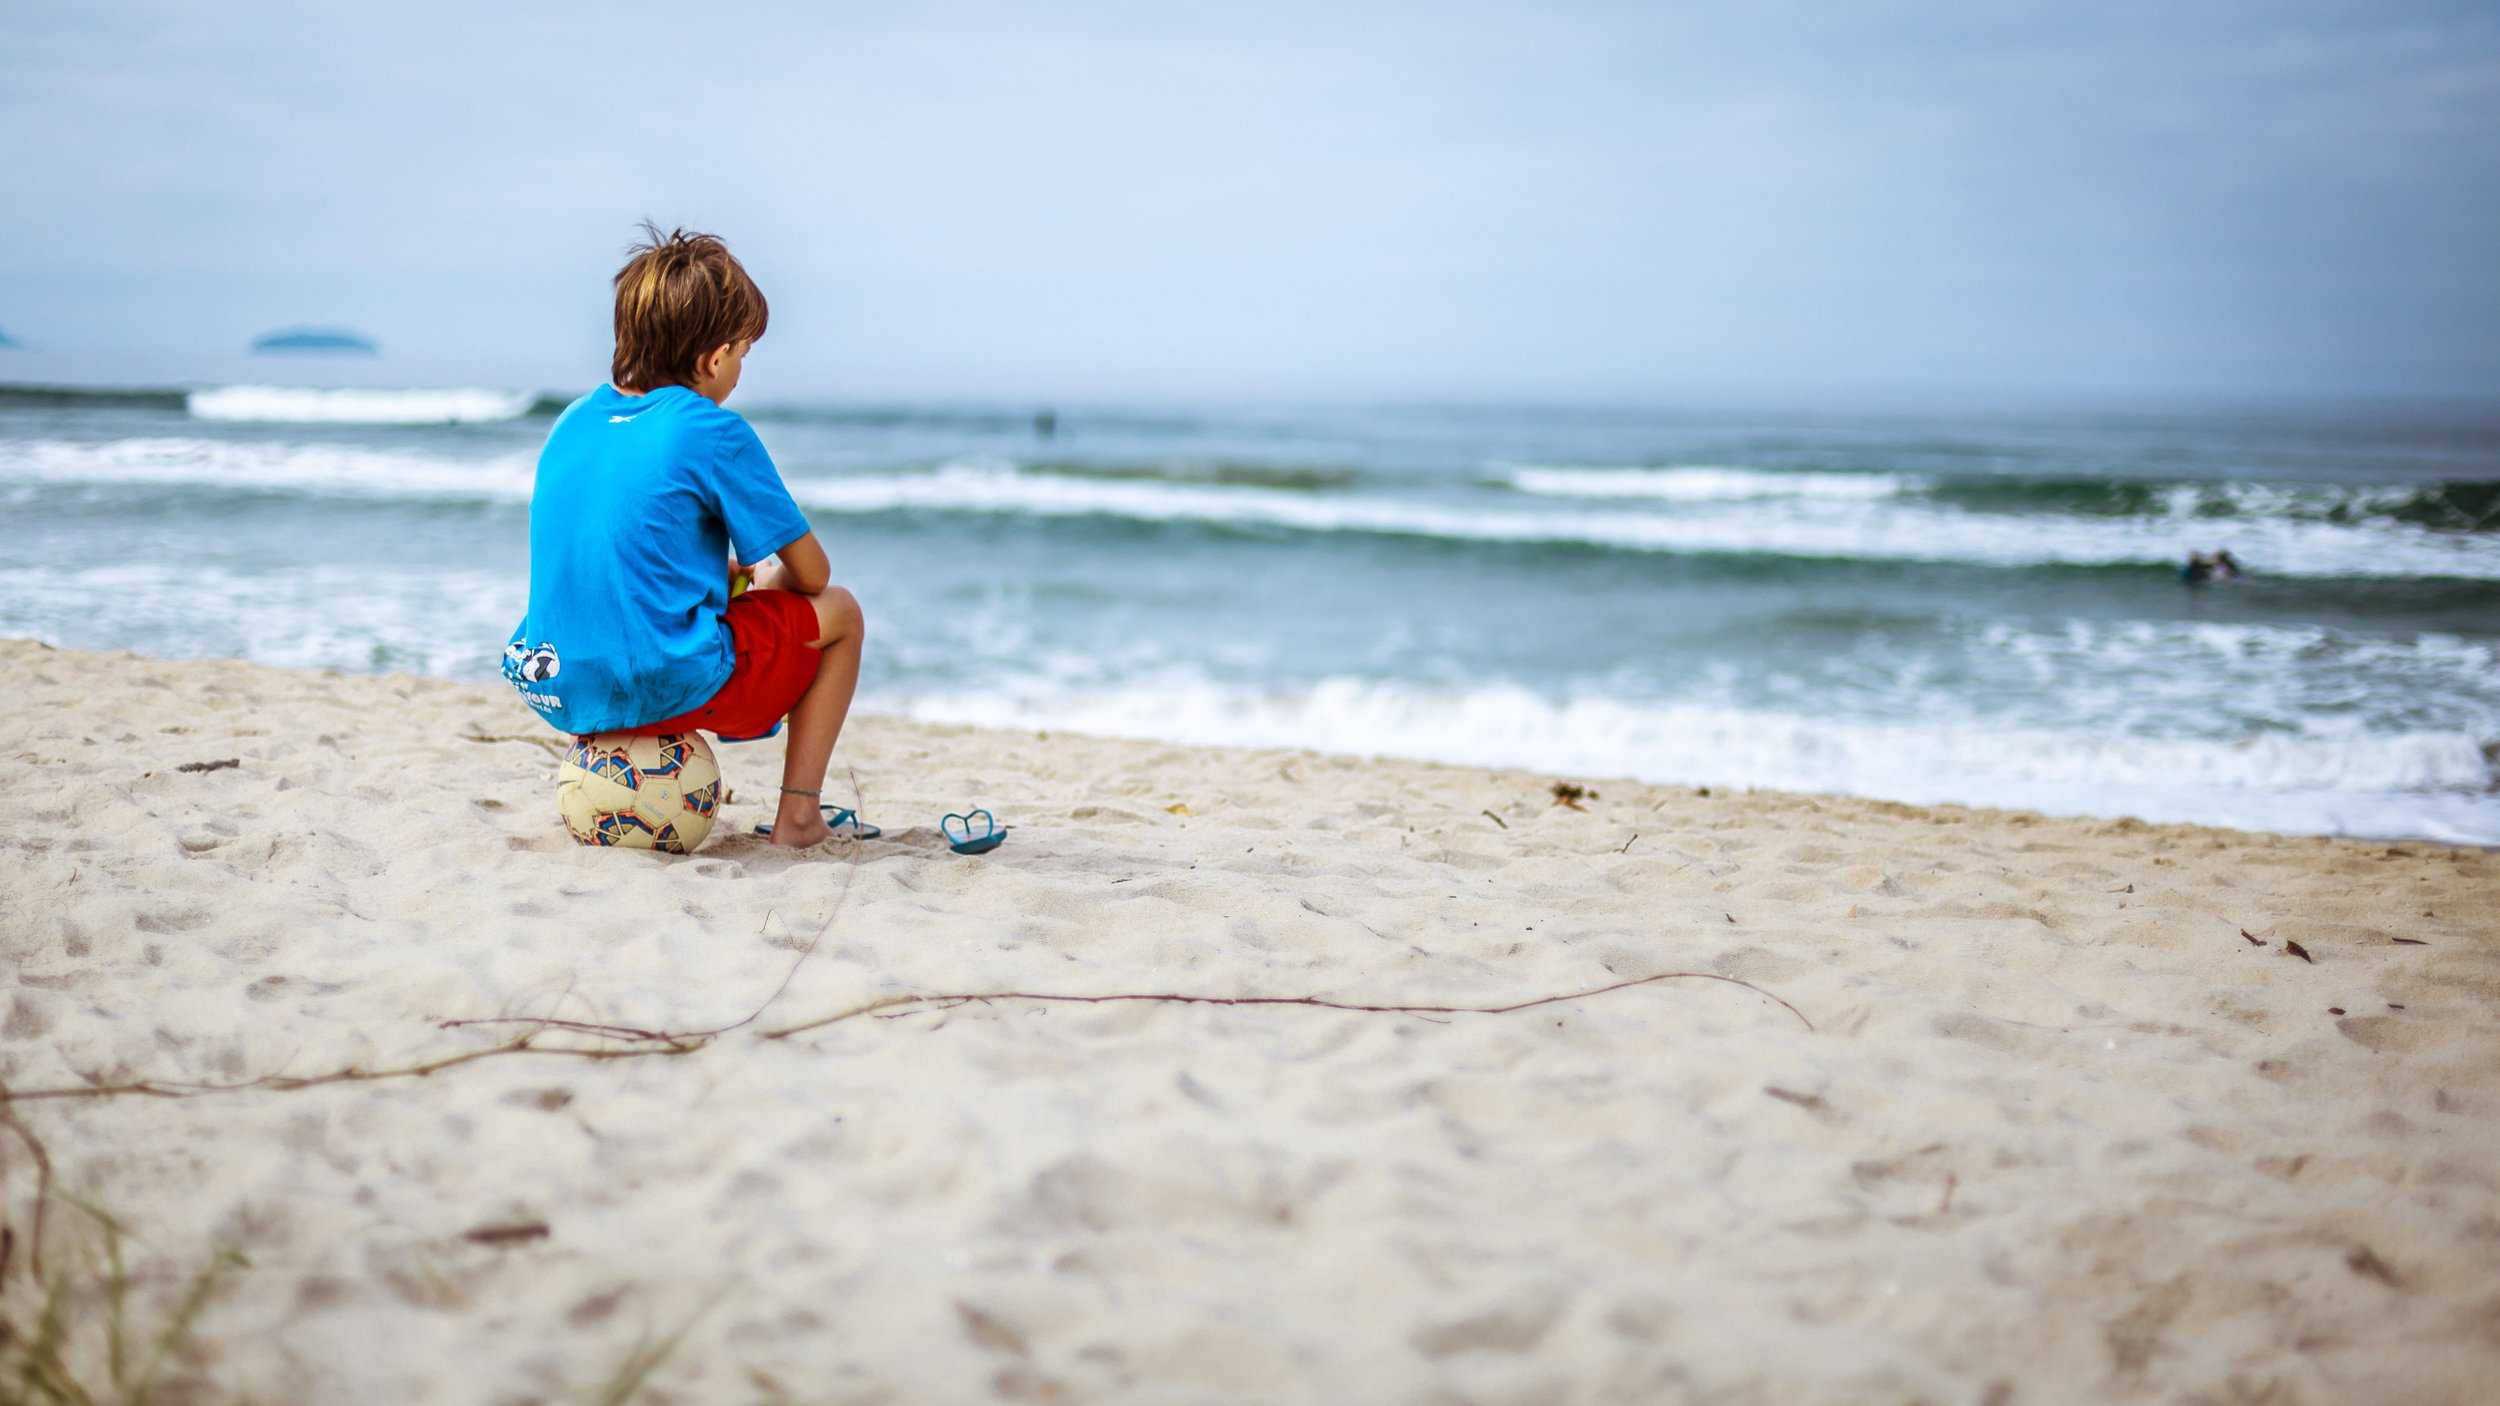 resilient child mindful present